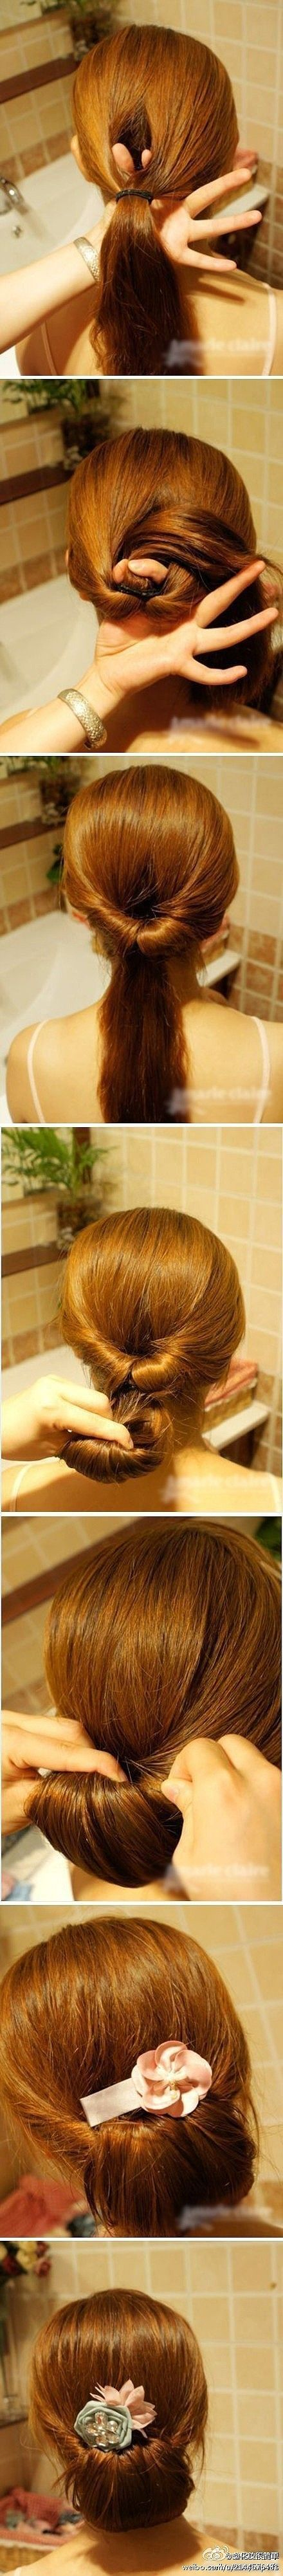 easy updos: Hair Ideas, Bridesmaid Hair, Long Hair, Hair Style, Ponies Tail, Hairbun, Updo, Hair Buns, Low Buns